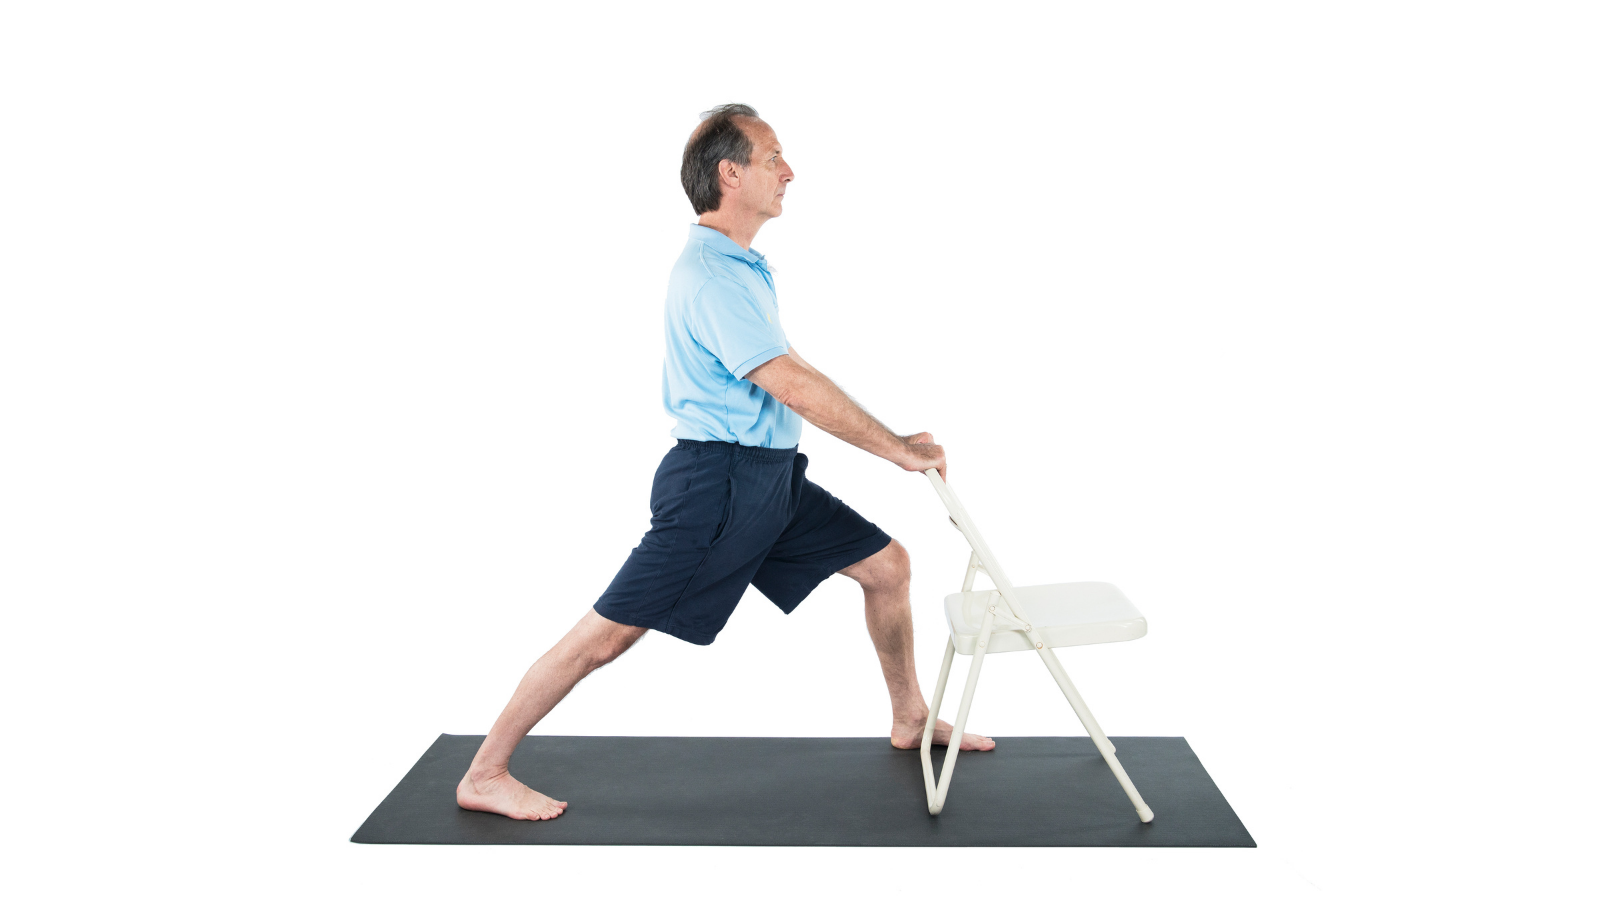 Practicing Warrior I Pose or Virabhadrasana Pose with the support of a chair